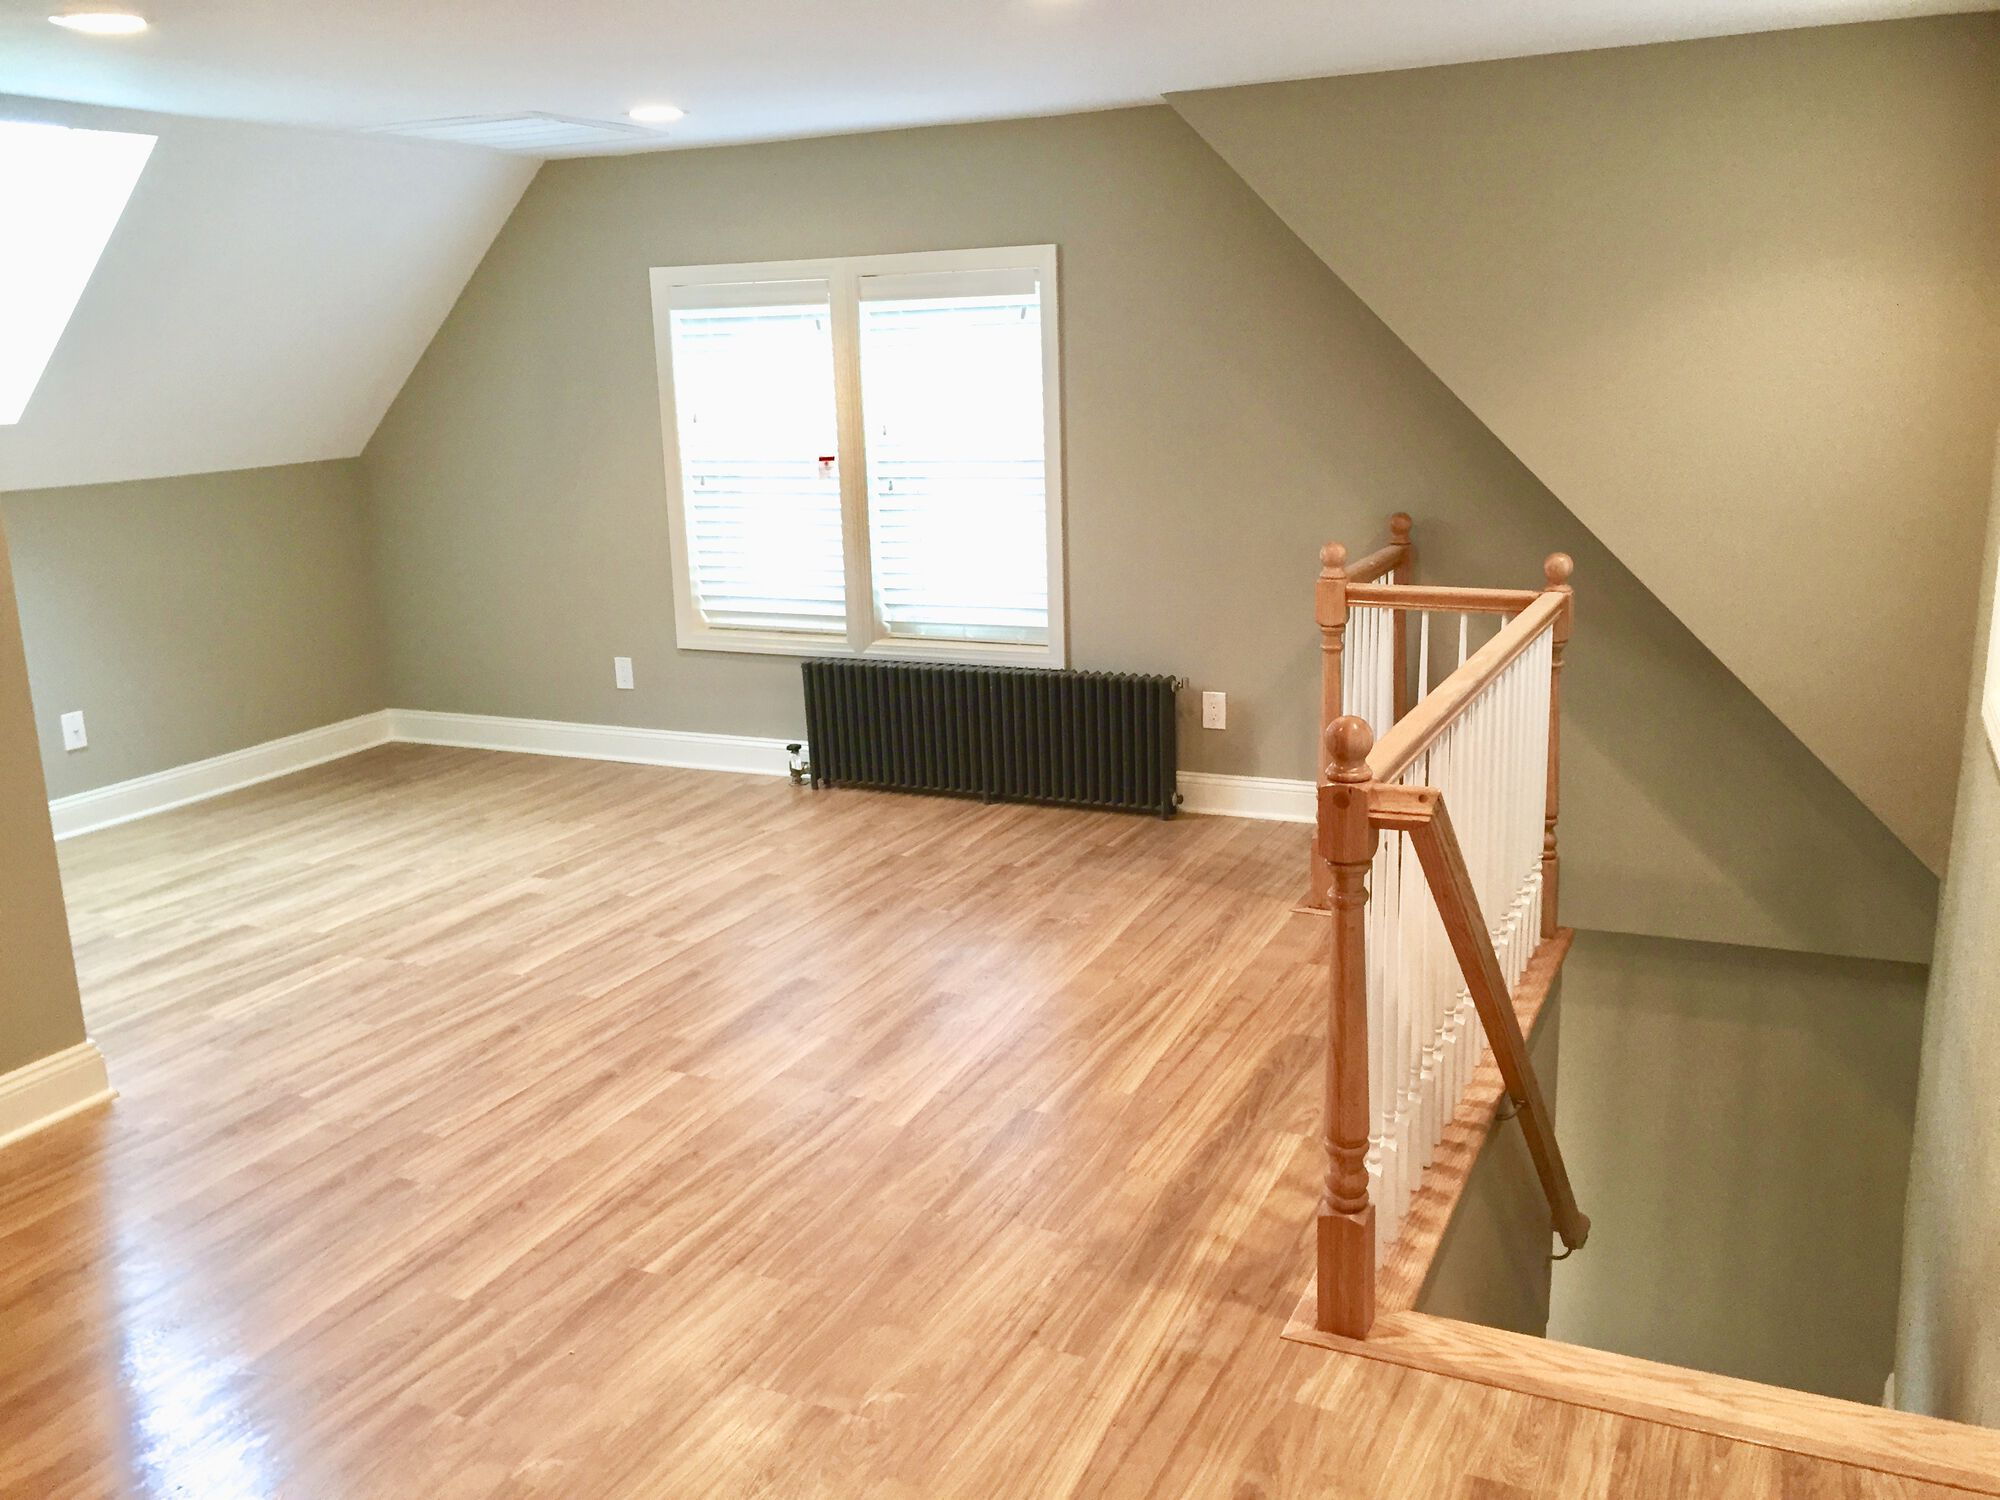 Attic Finishing with Dormer in New Brunswick, Middlesex County NJ